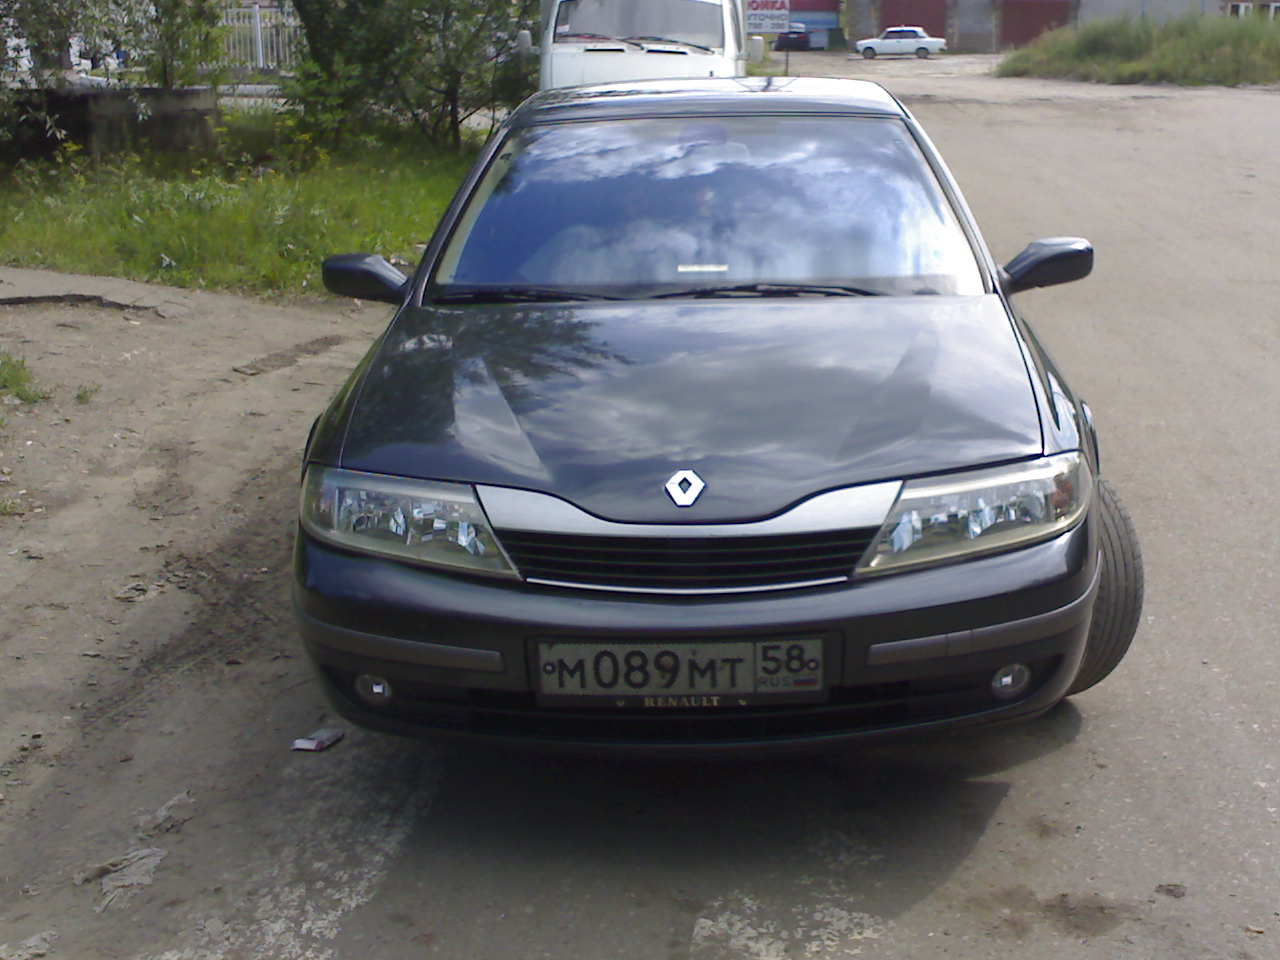 2001 renault laguna images 1800cc gasoline ff manual for sale. Black Bedroom Furniture Sets. Home Design Ideas